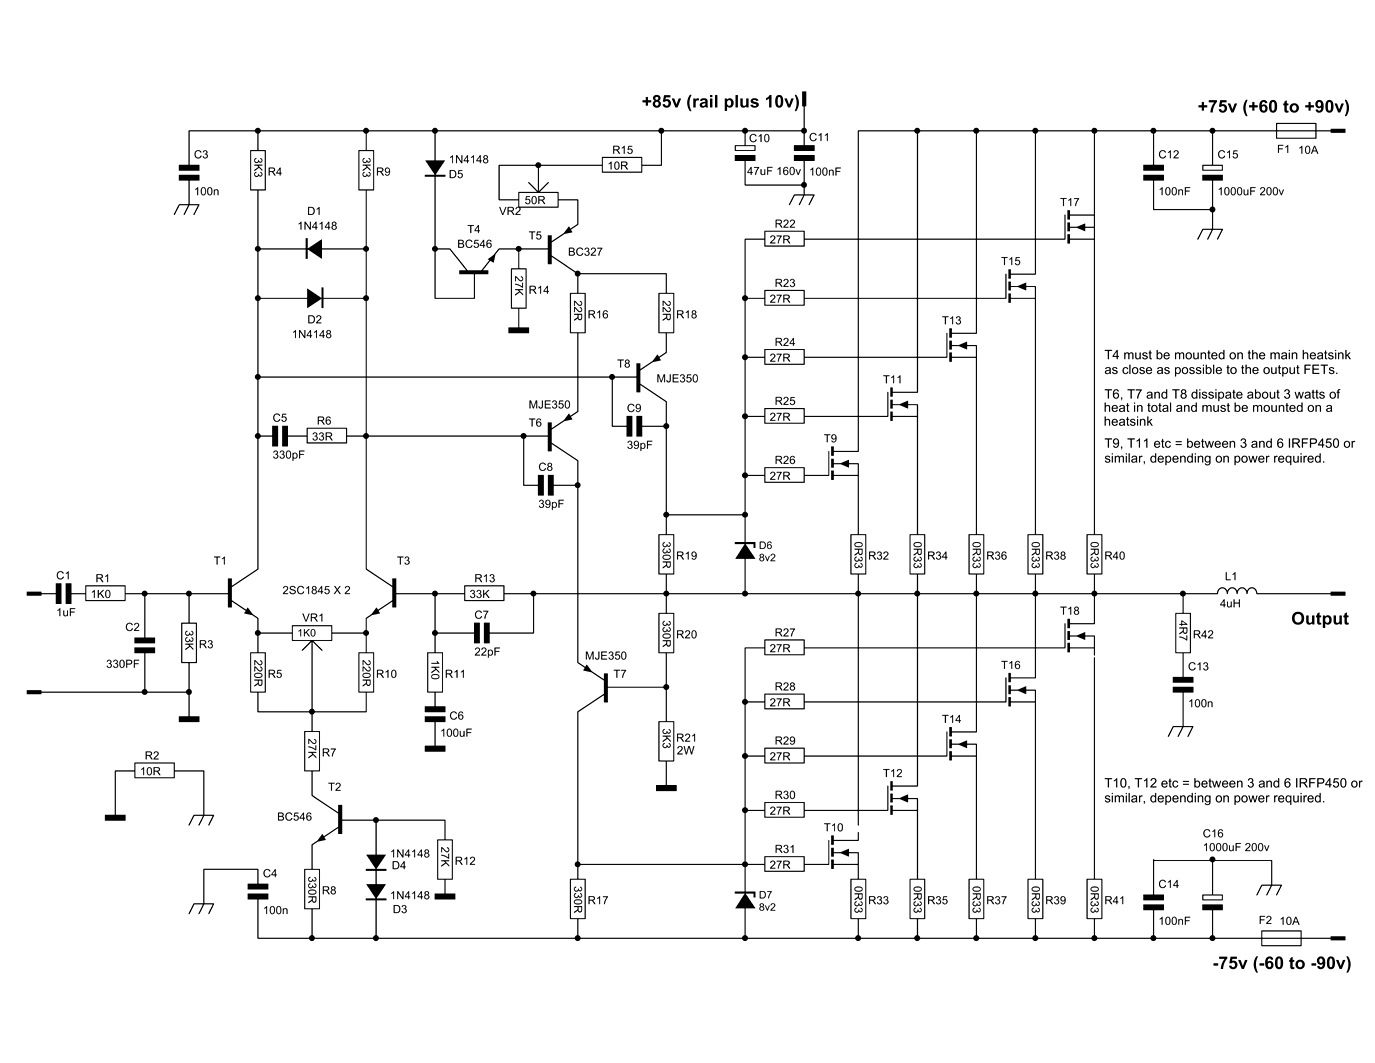 Component 600 Watt Mosfet Power Amplifier With Pcb Ave Circuits Amp Transformerless Supply Circuit Eleccircuitcom Schematic For Thomas 820 Organ 600wattmosfetpowerampl Ta7205 High Williamson 12au7 Pdf